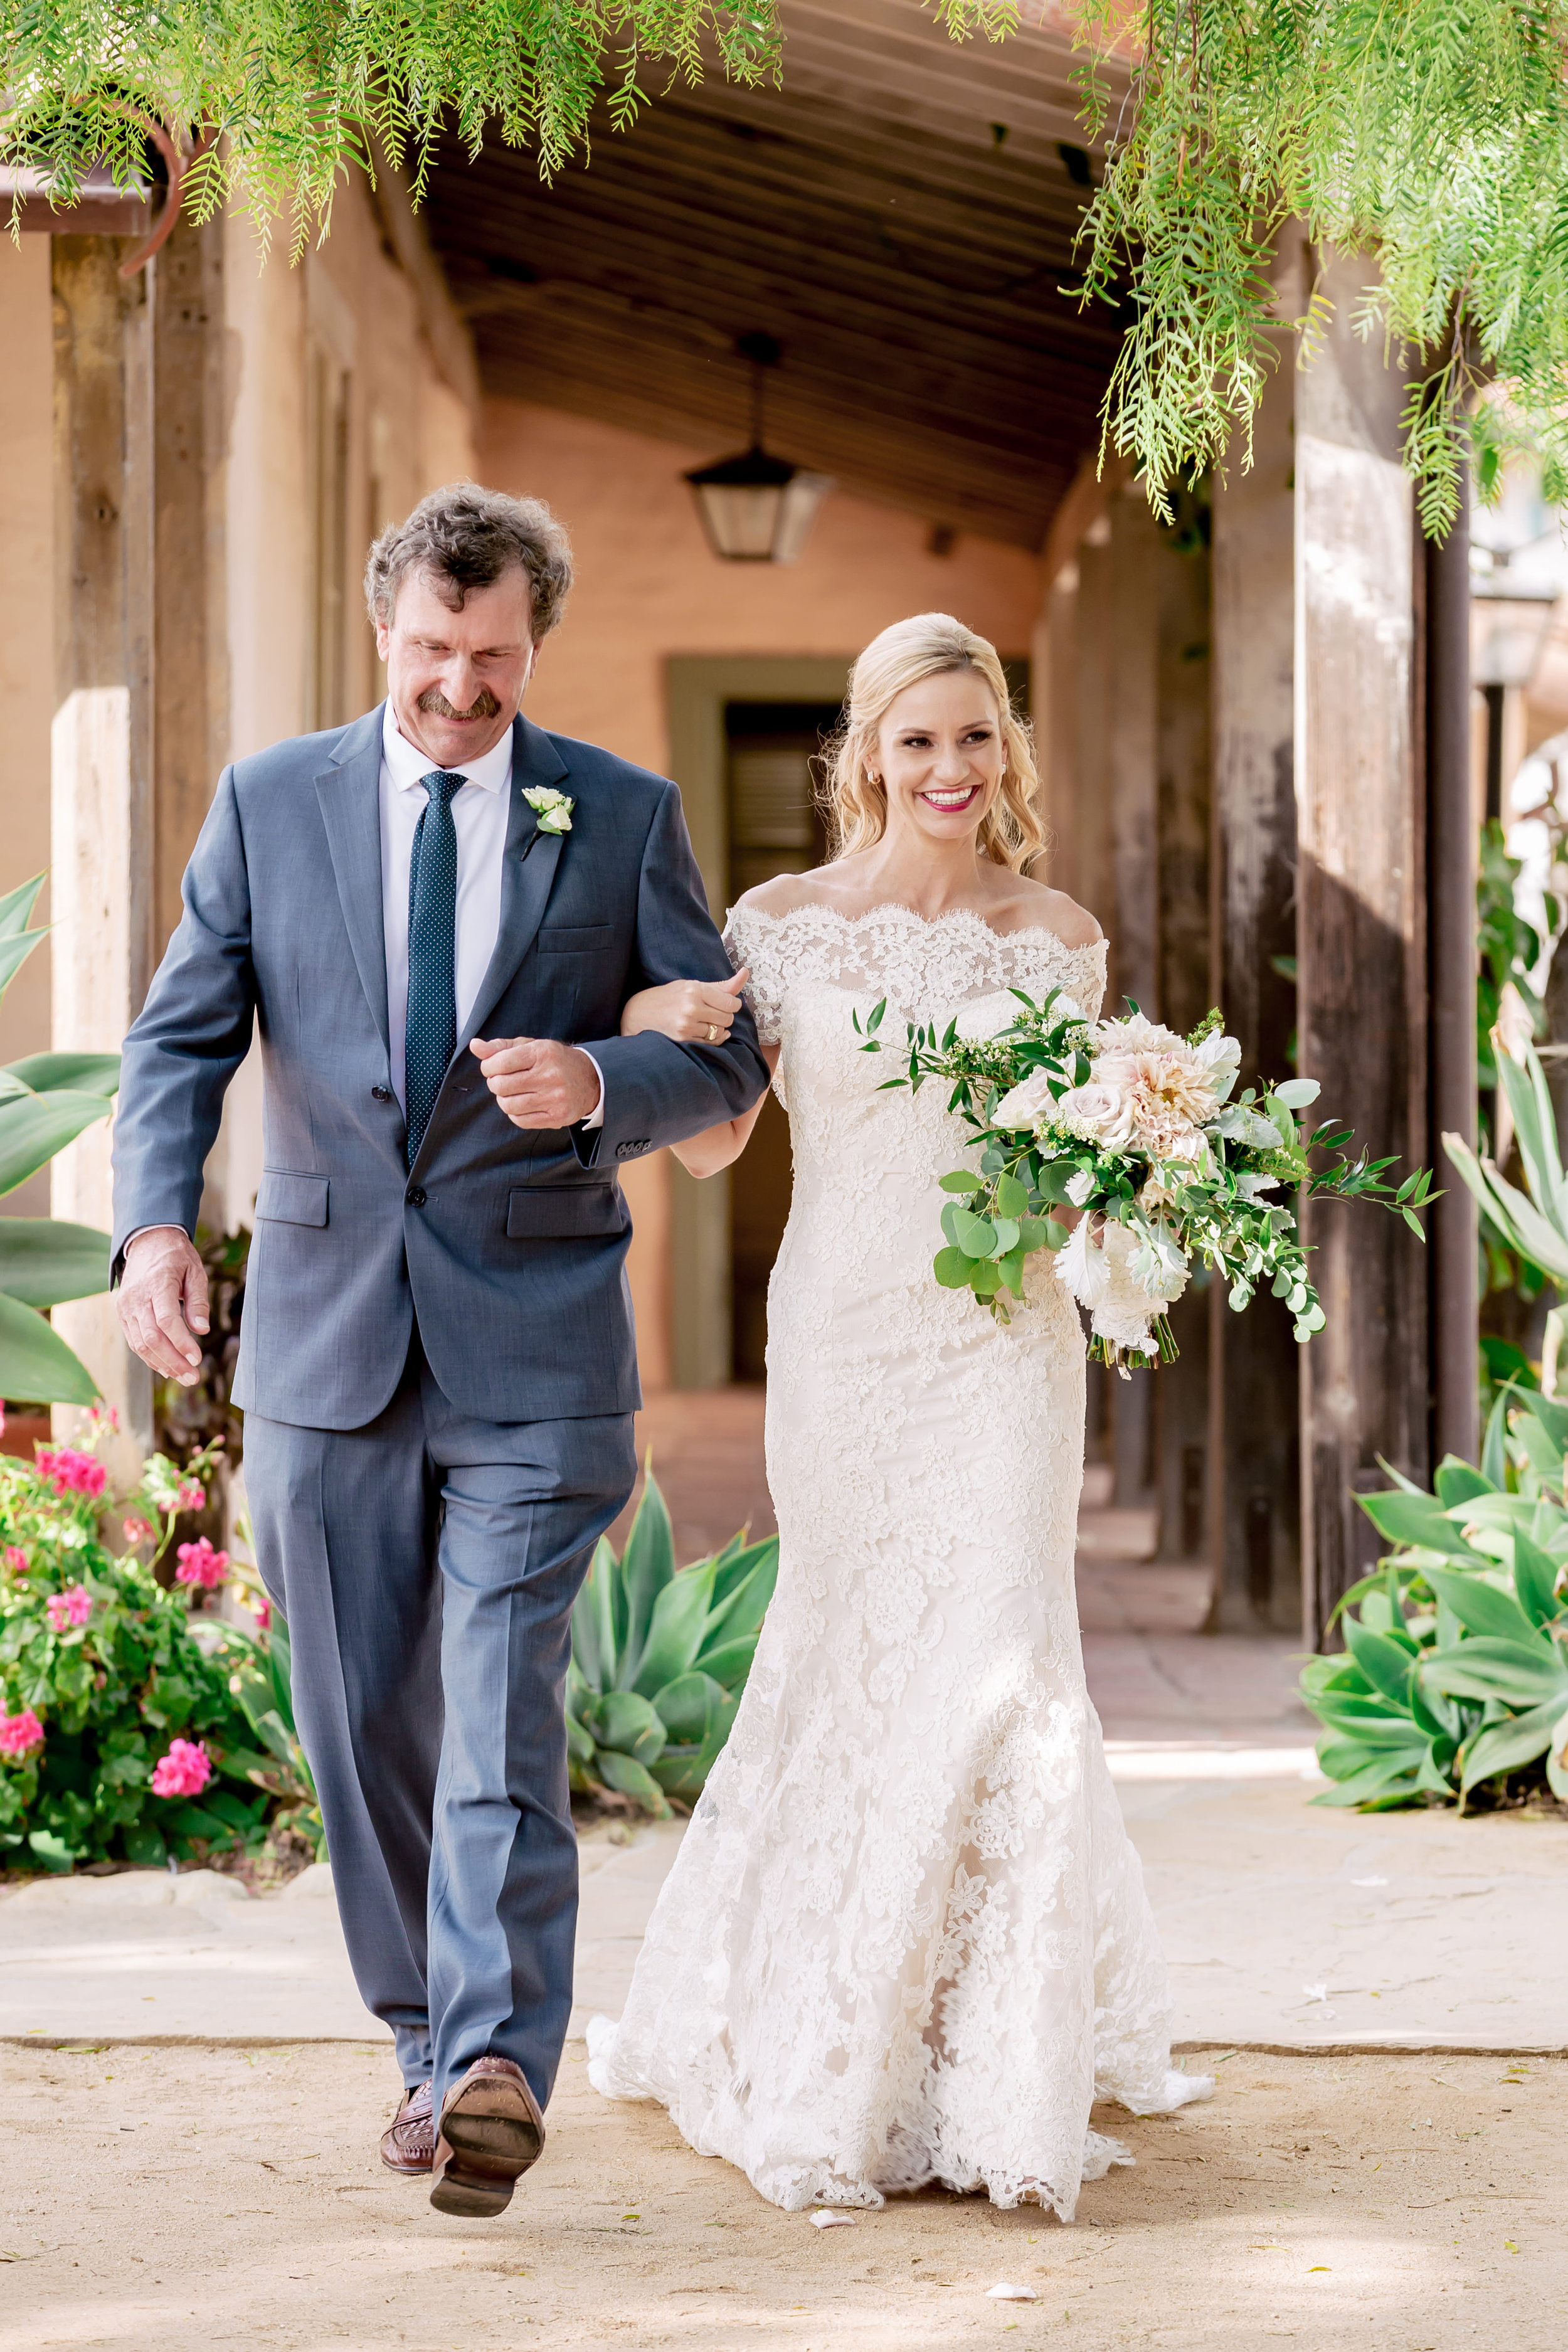 www.santabarbarawedding.com | Rewind Photography | Events by M and M | Santa Barbara Historical Museum | Bride and Father walking down aisle